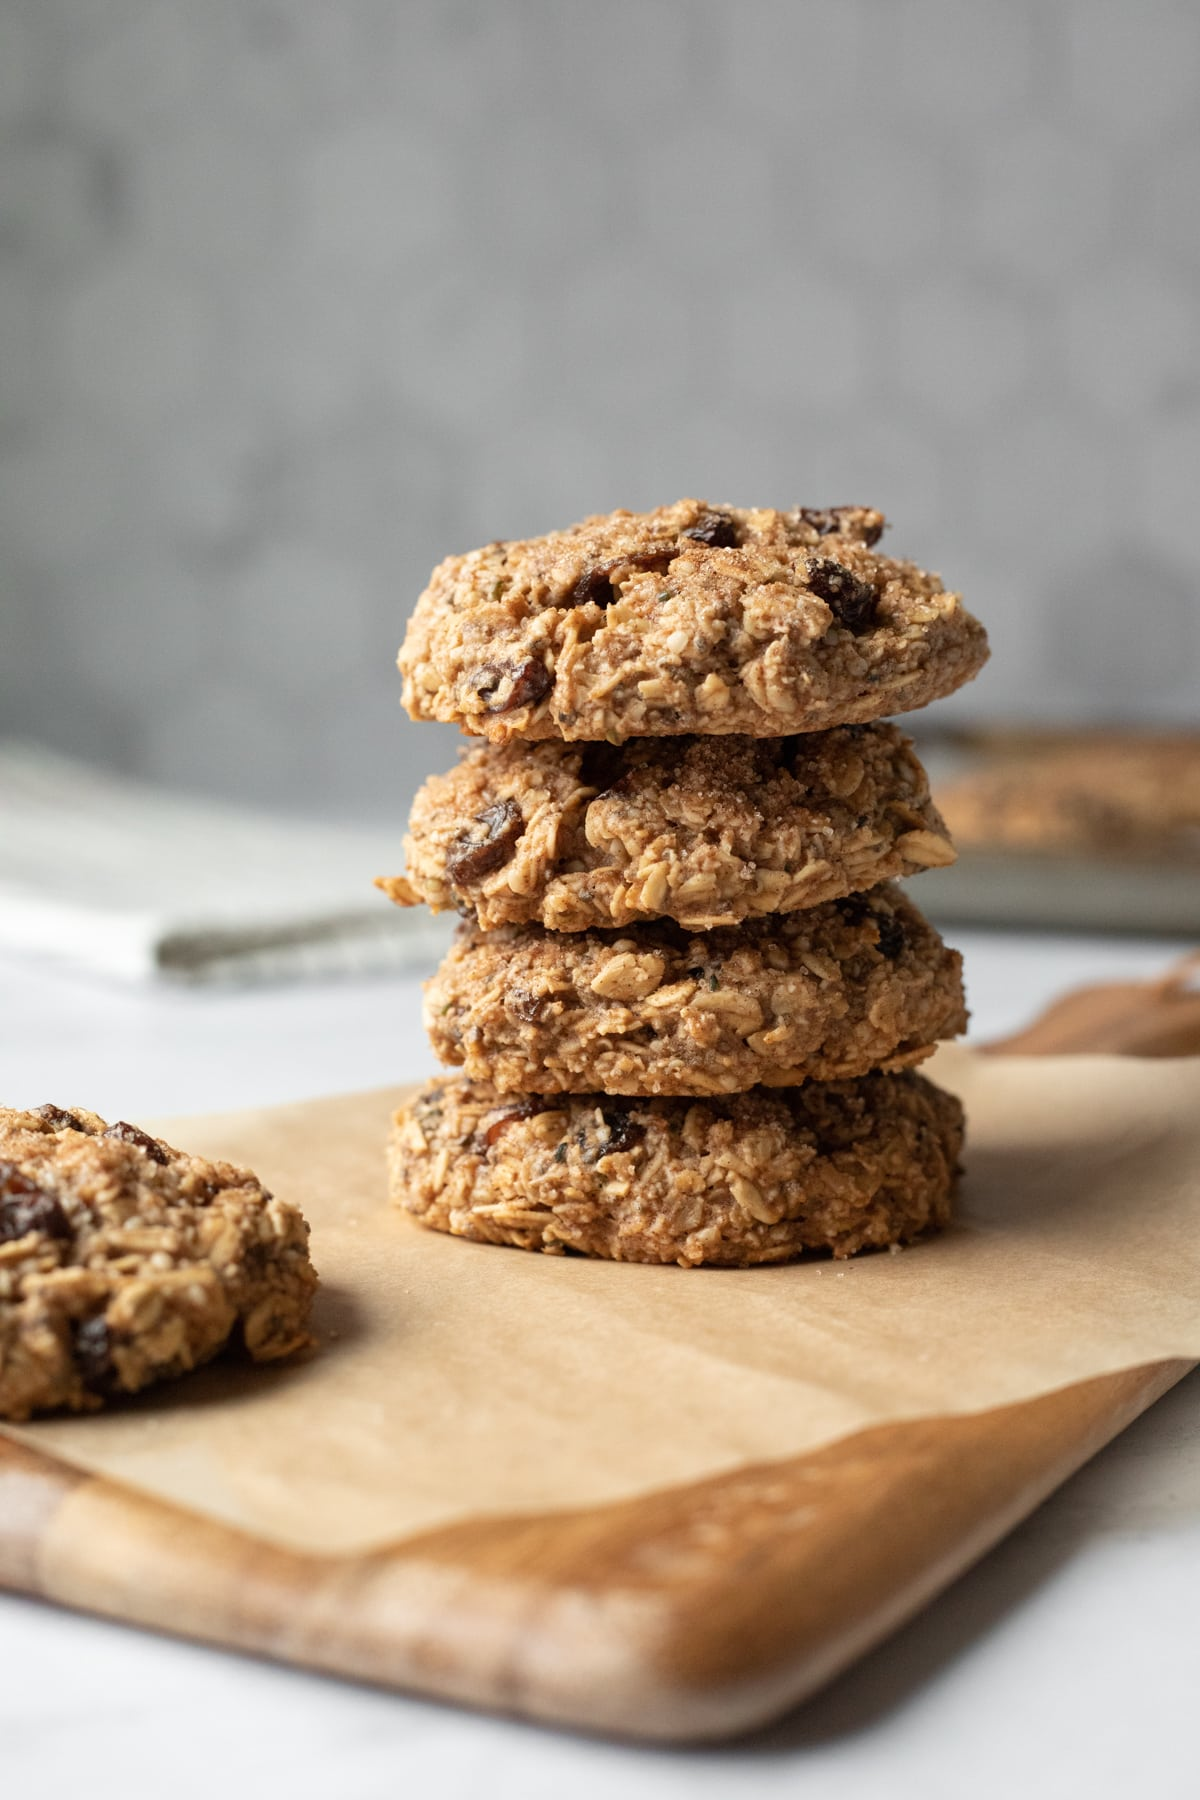 stack of 4 plump and chunky cookies agains a gray tile background.